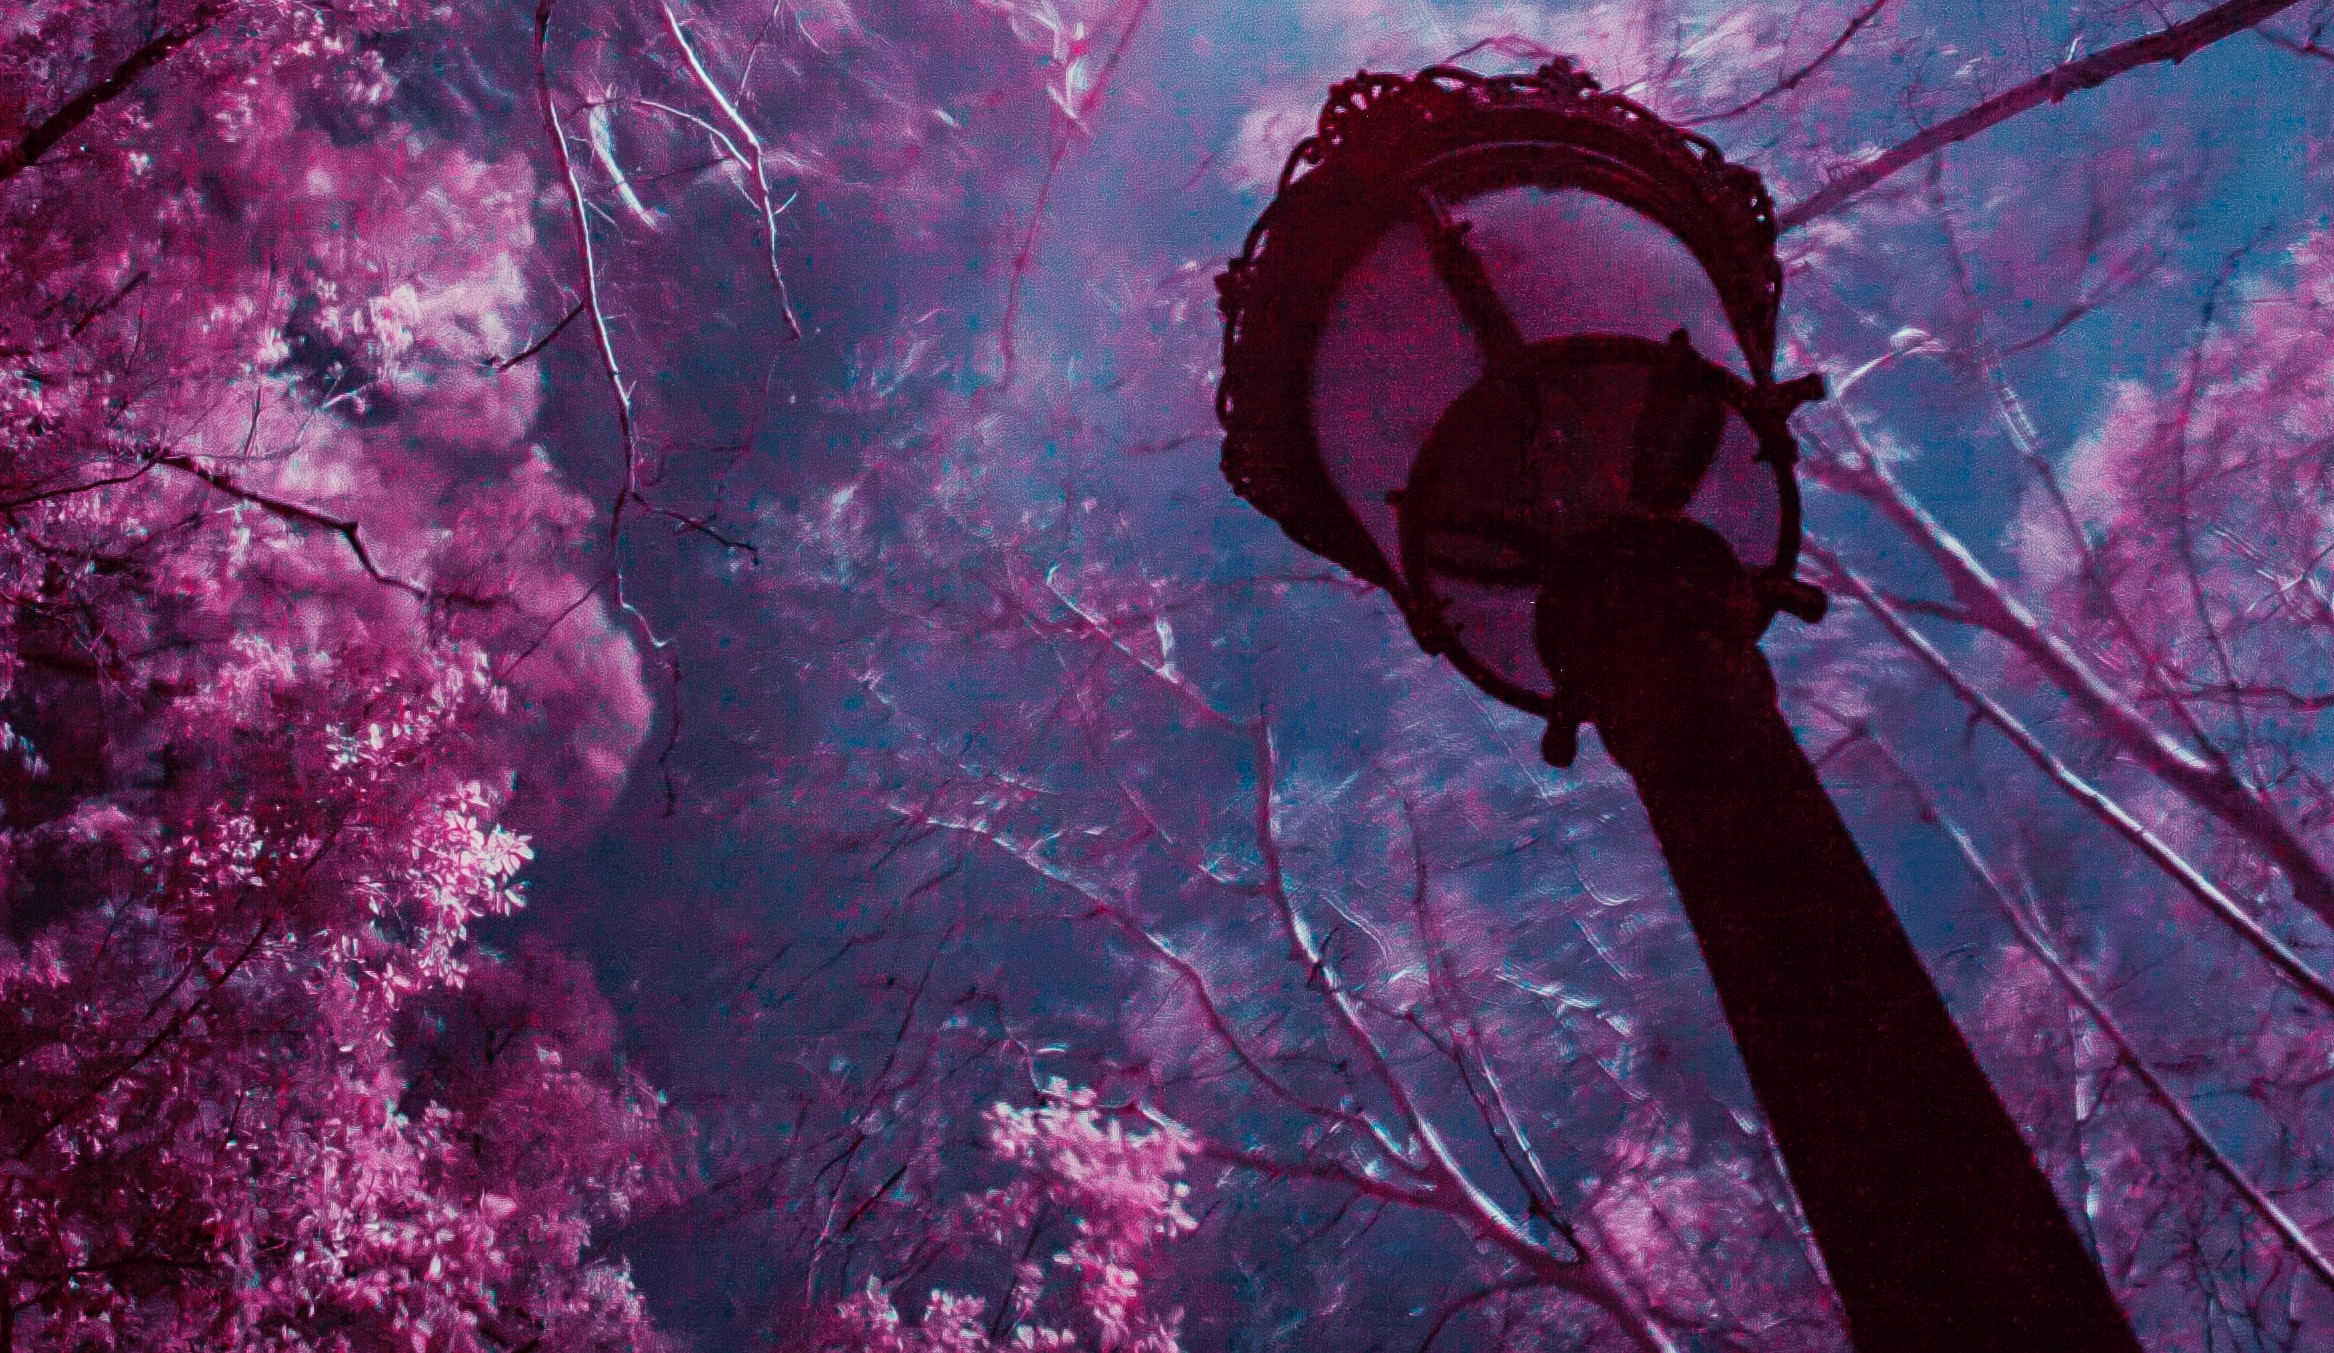 A facing-upwards image of an old fashioned lamp with some lit up trees in the background. The entire image is tinted purple.